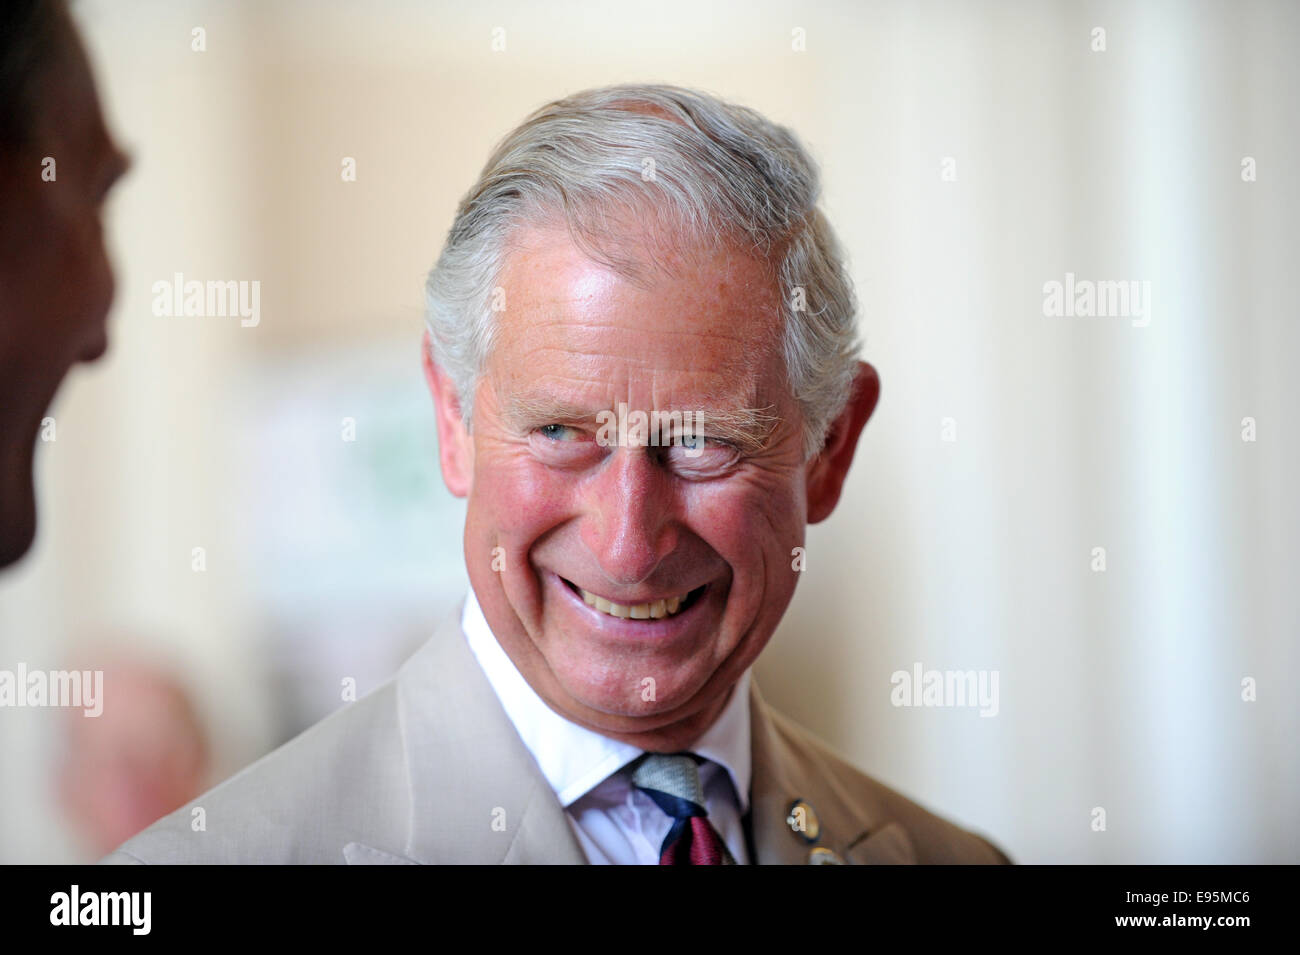 Un détendu et souriant, le prince Charles lors d'une participation du public au Sussex Photo Stock